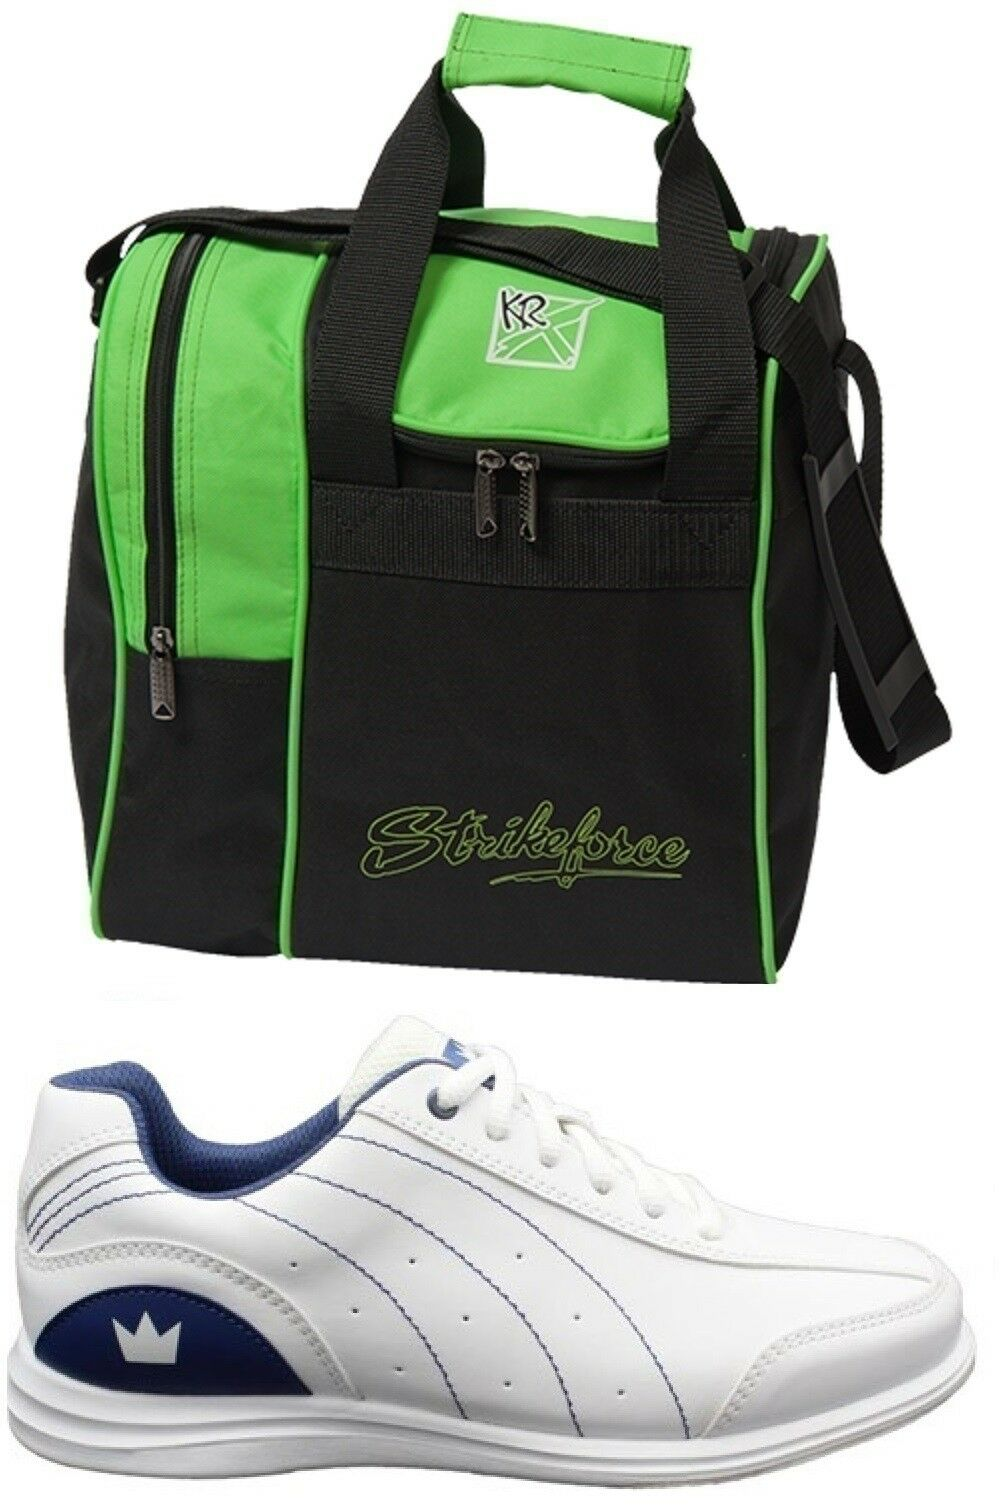 Womens MYSTIC Bowling Ball shoes White bluee Sizes 7-11 WIDE & Green 1 Ball Bag